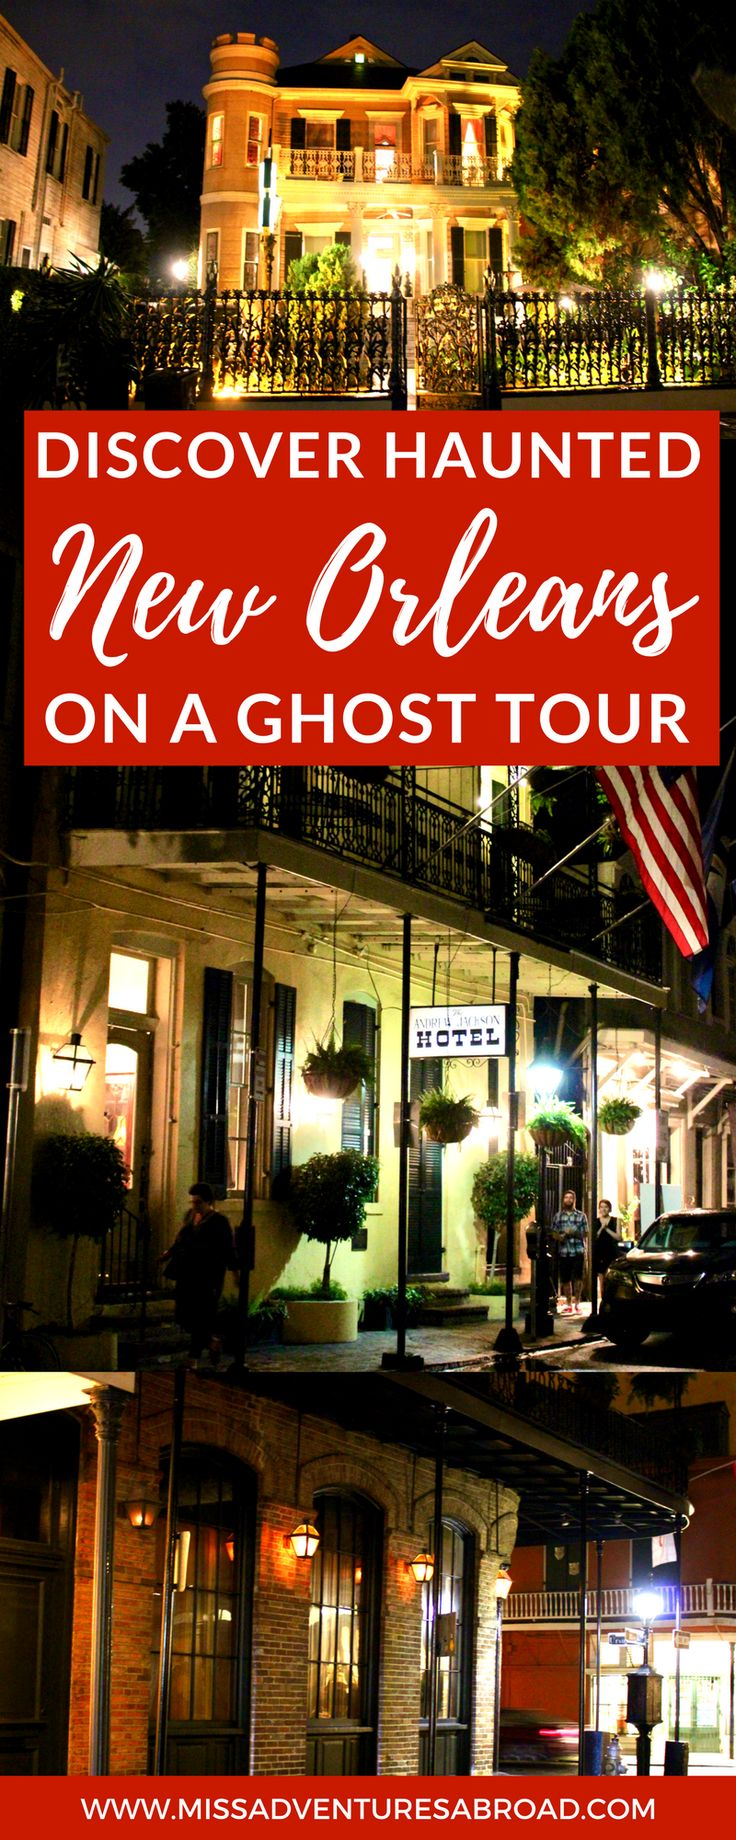 Discovering Haunted New Orleans On A Ghost Tour · New Orleans, Louisiana is filled with tons of haunted history and creepy stories! While visiting the city, you won't want to miss out on a spooky ghost tour to learn about the city's most haunted sites!